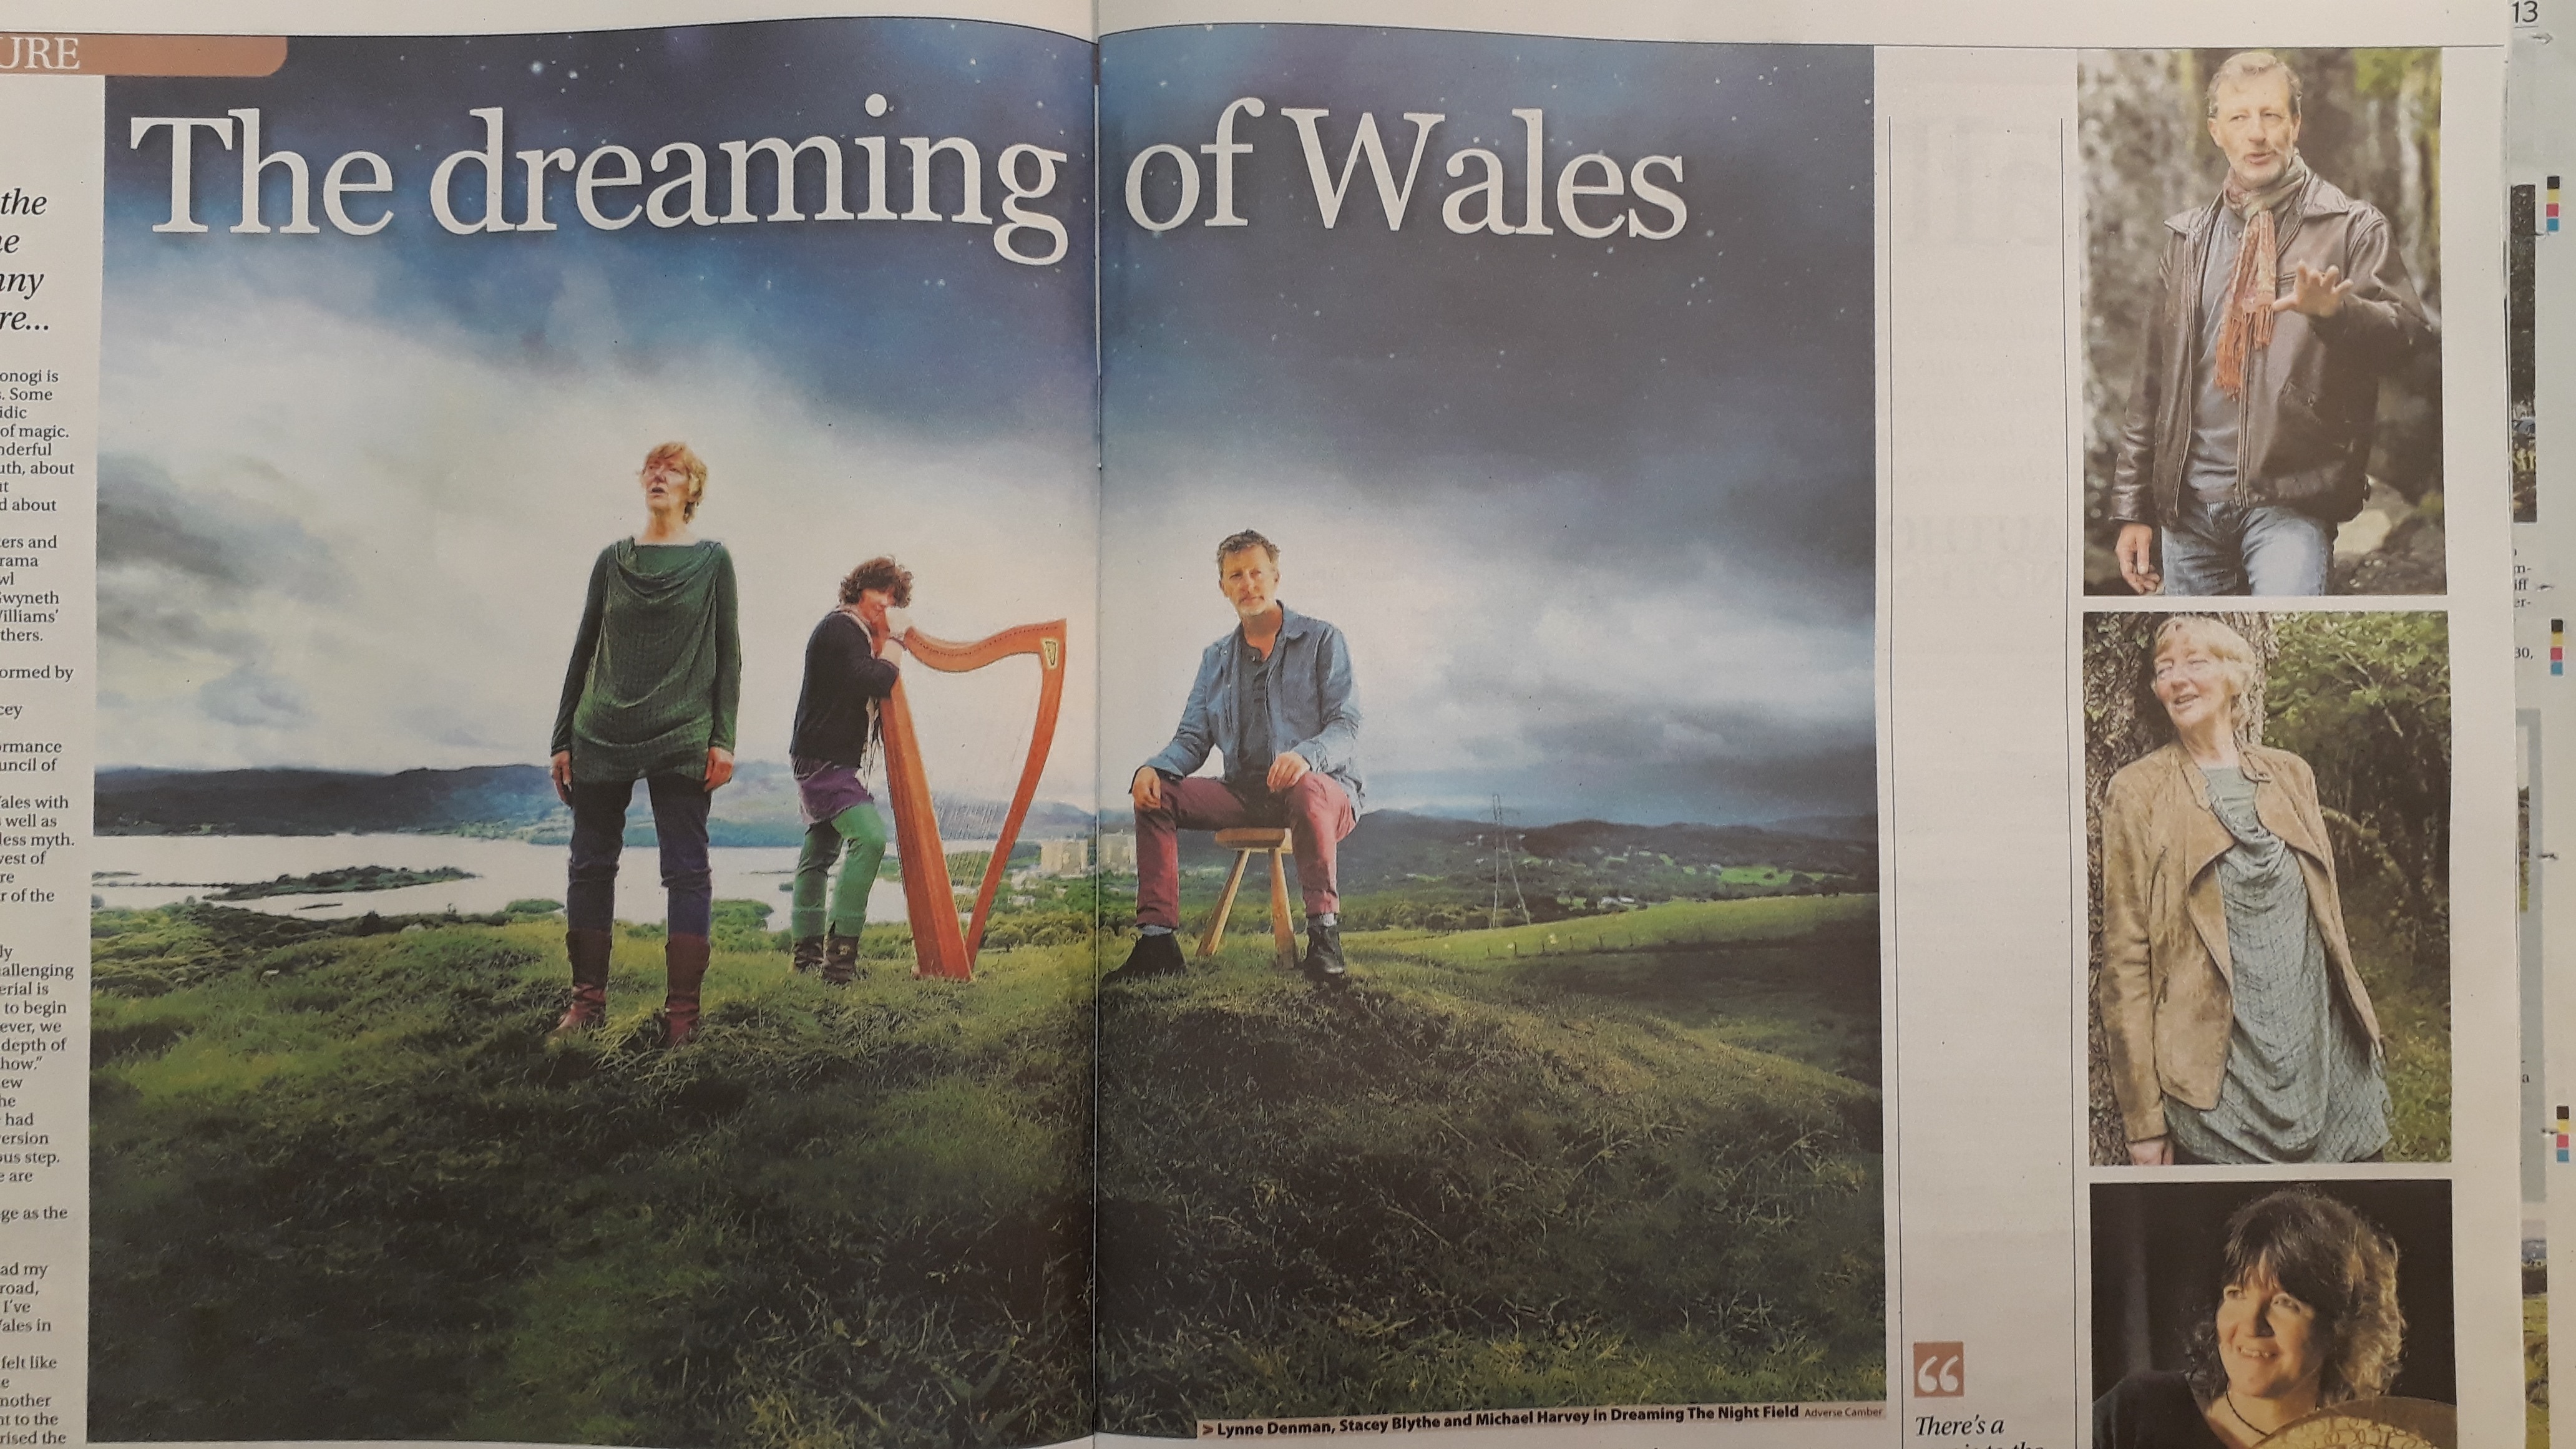 Double page spread in the Western Mail